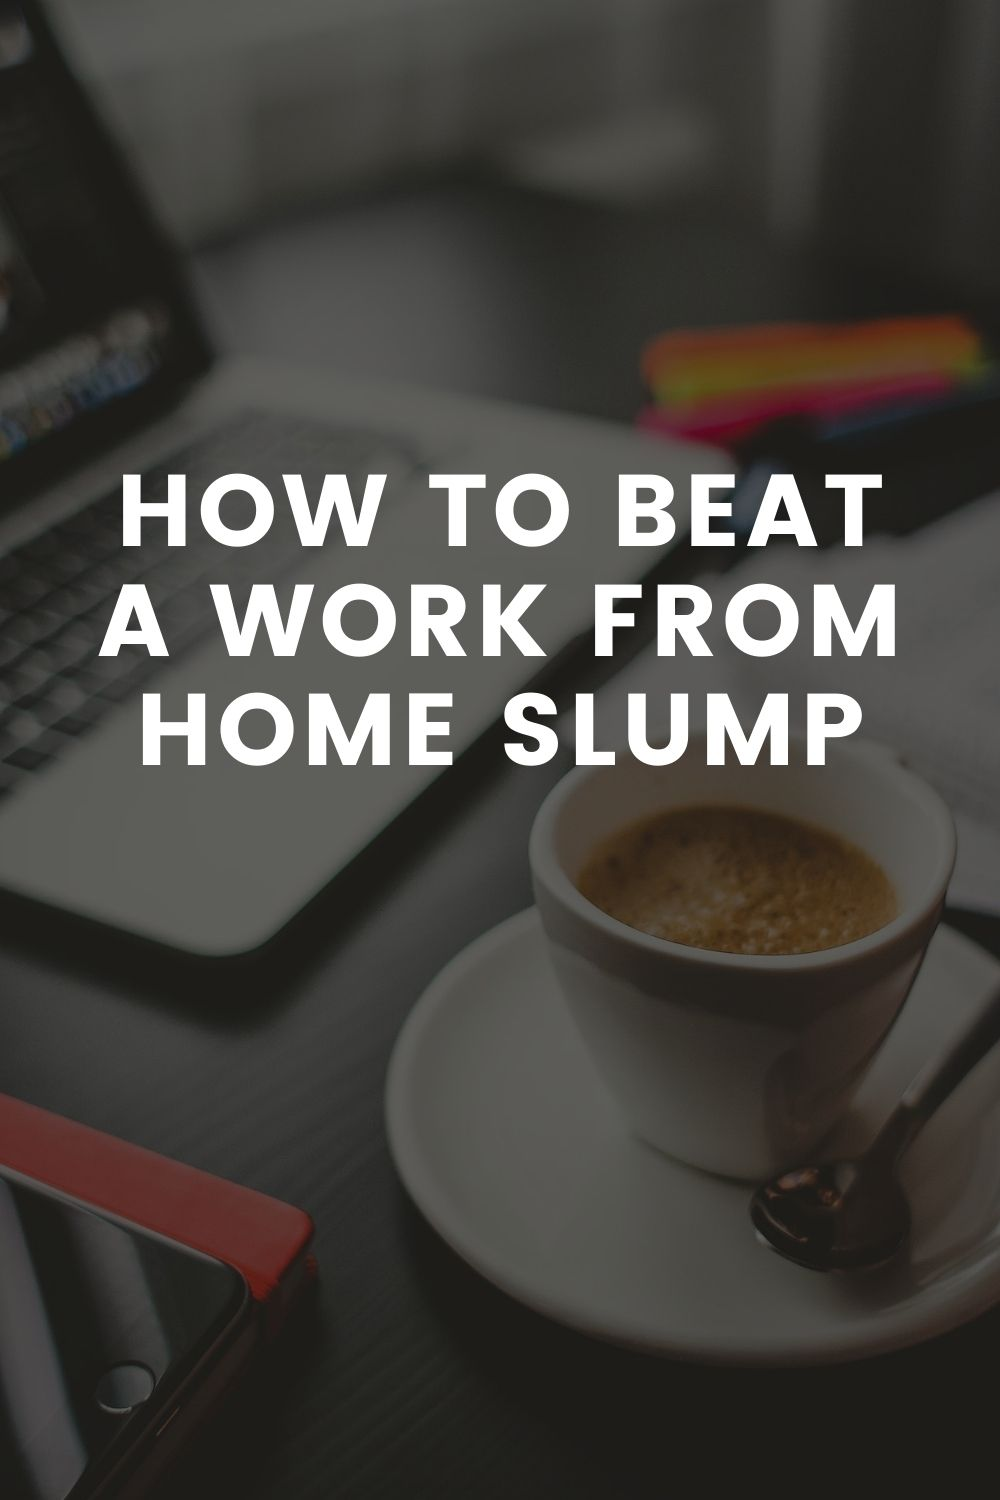 How to Beat a Work From Home Slump